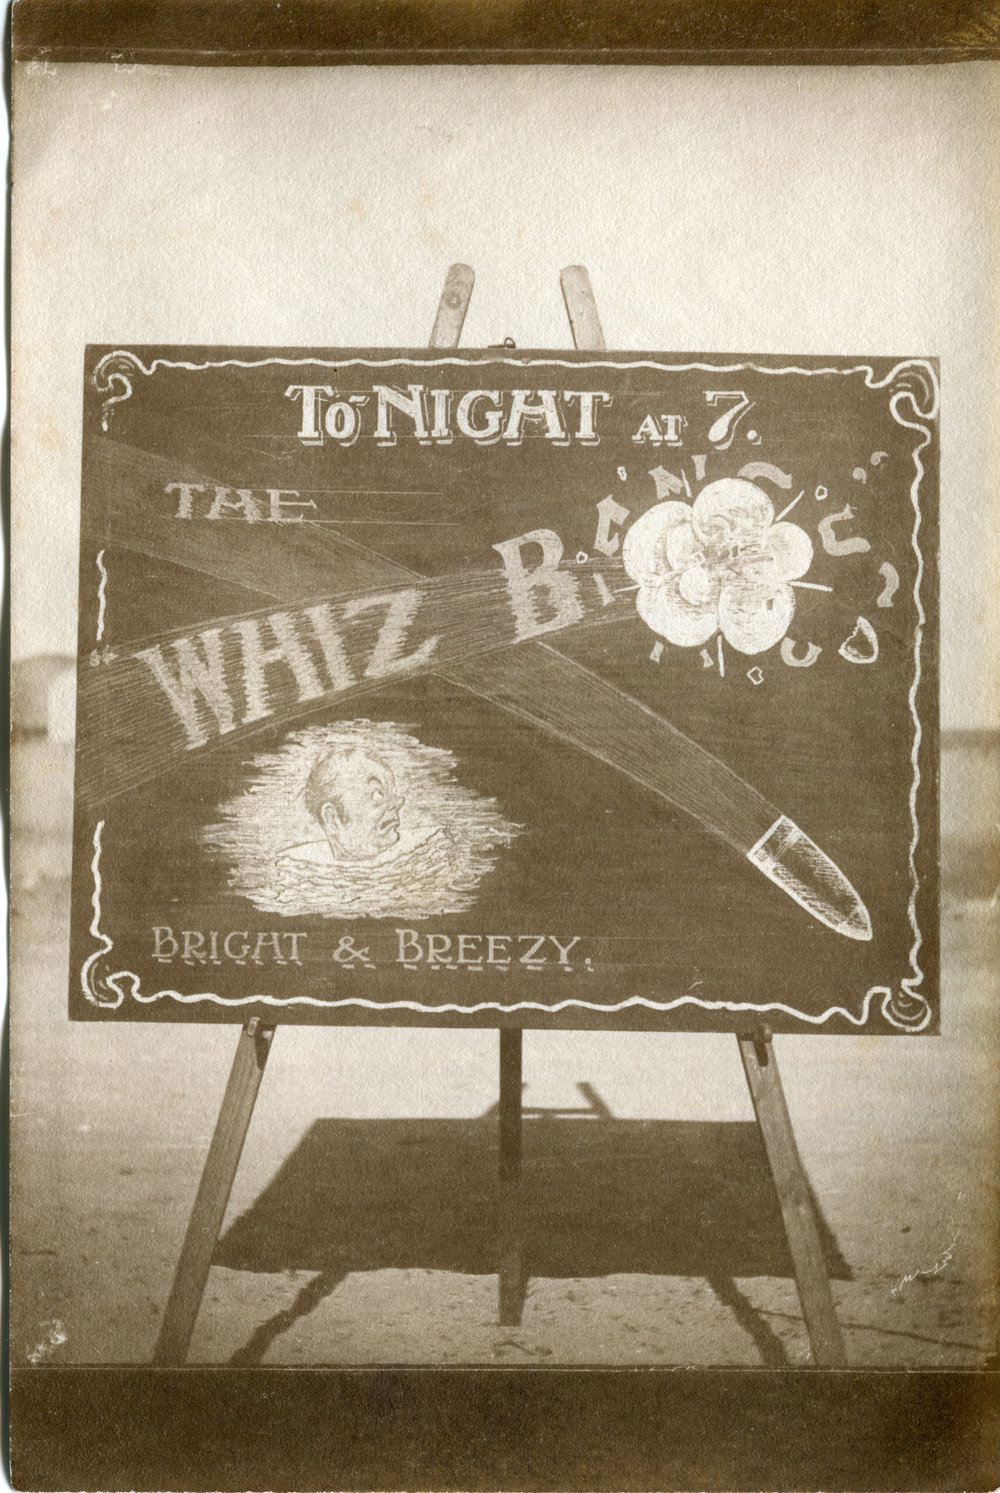 reg walters067 Whiz Bangs possibly Desert Mounted Corps Rest Camp Concert Party 13 September 1918.jpg